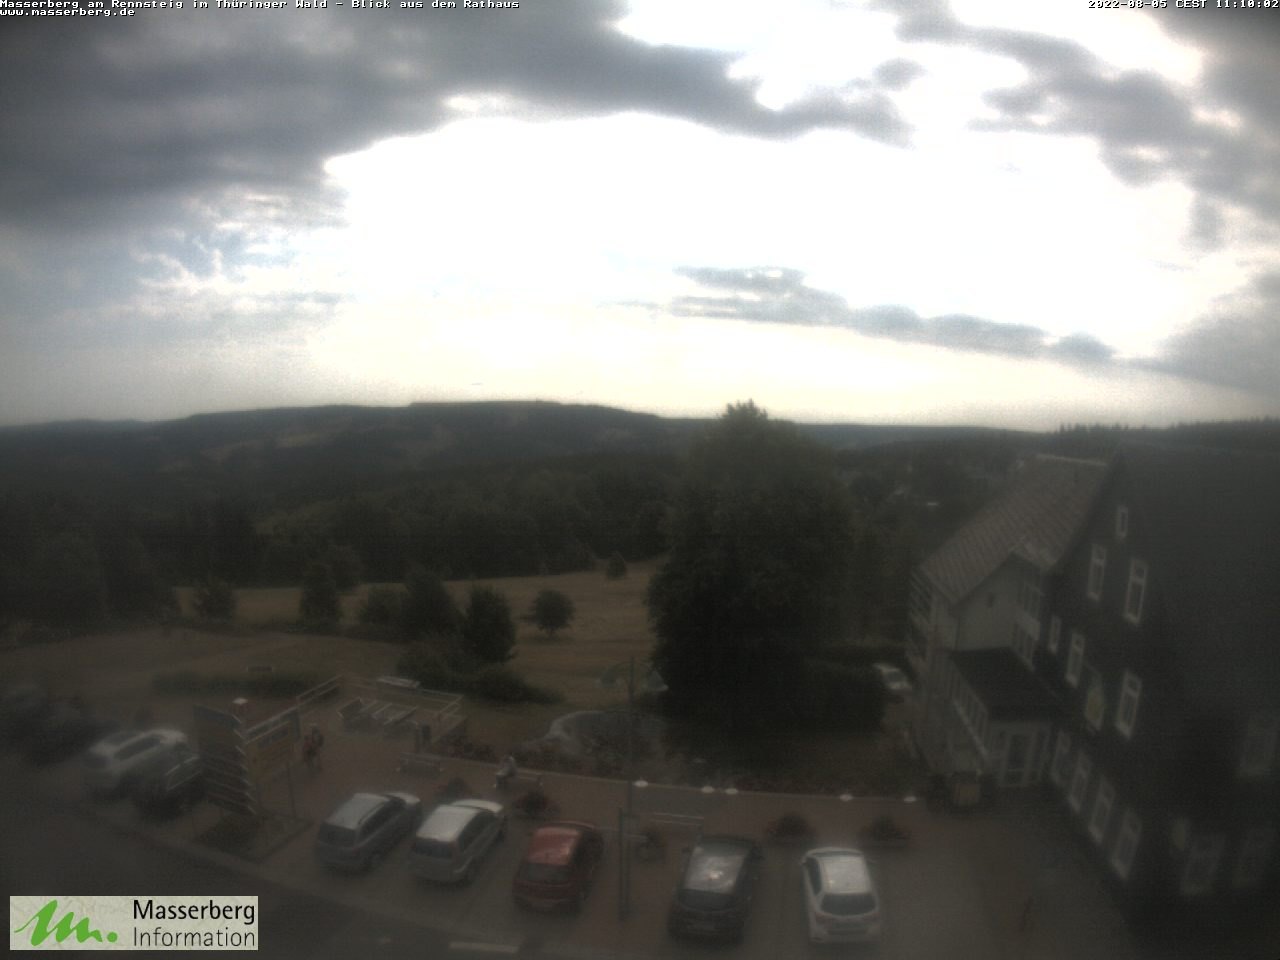 Webcam Ski Resort Masserberg - Skiarena Heubach Thuringian Forest